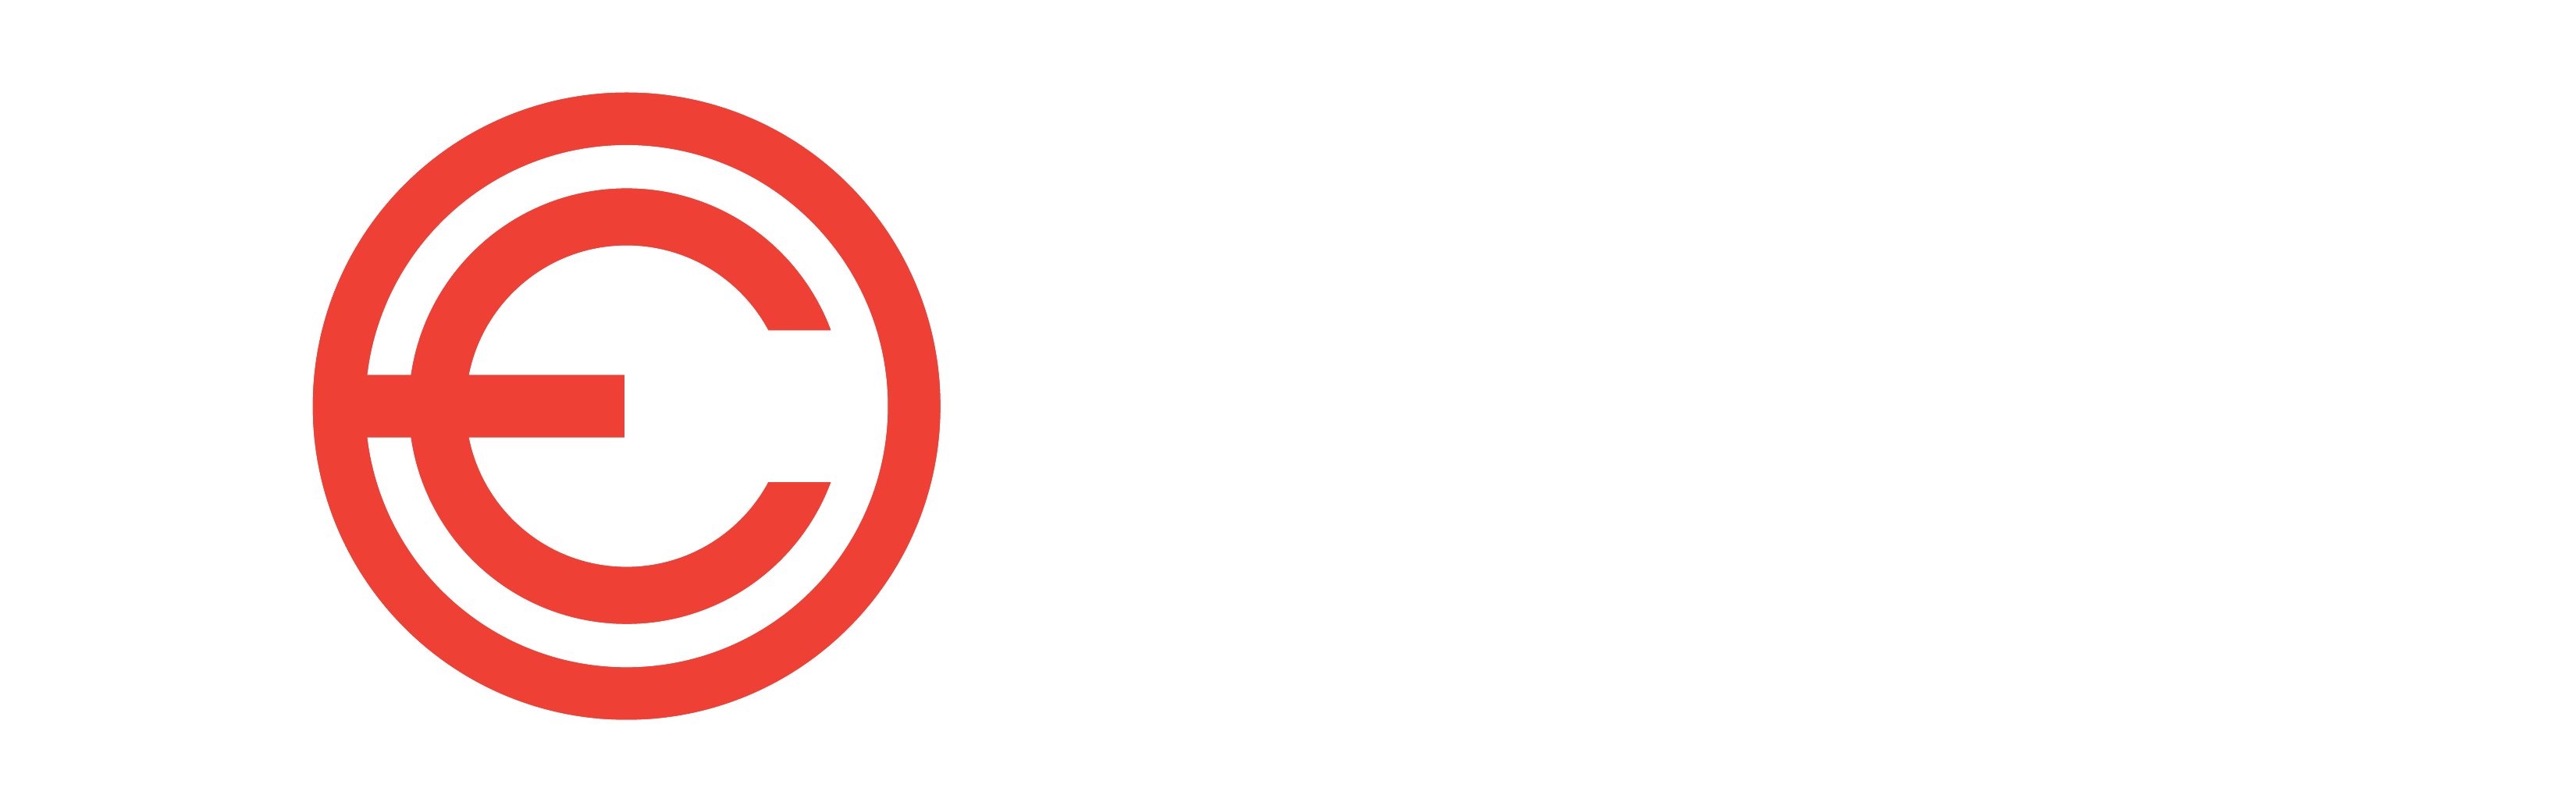 CEO-logo-white-01.png